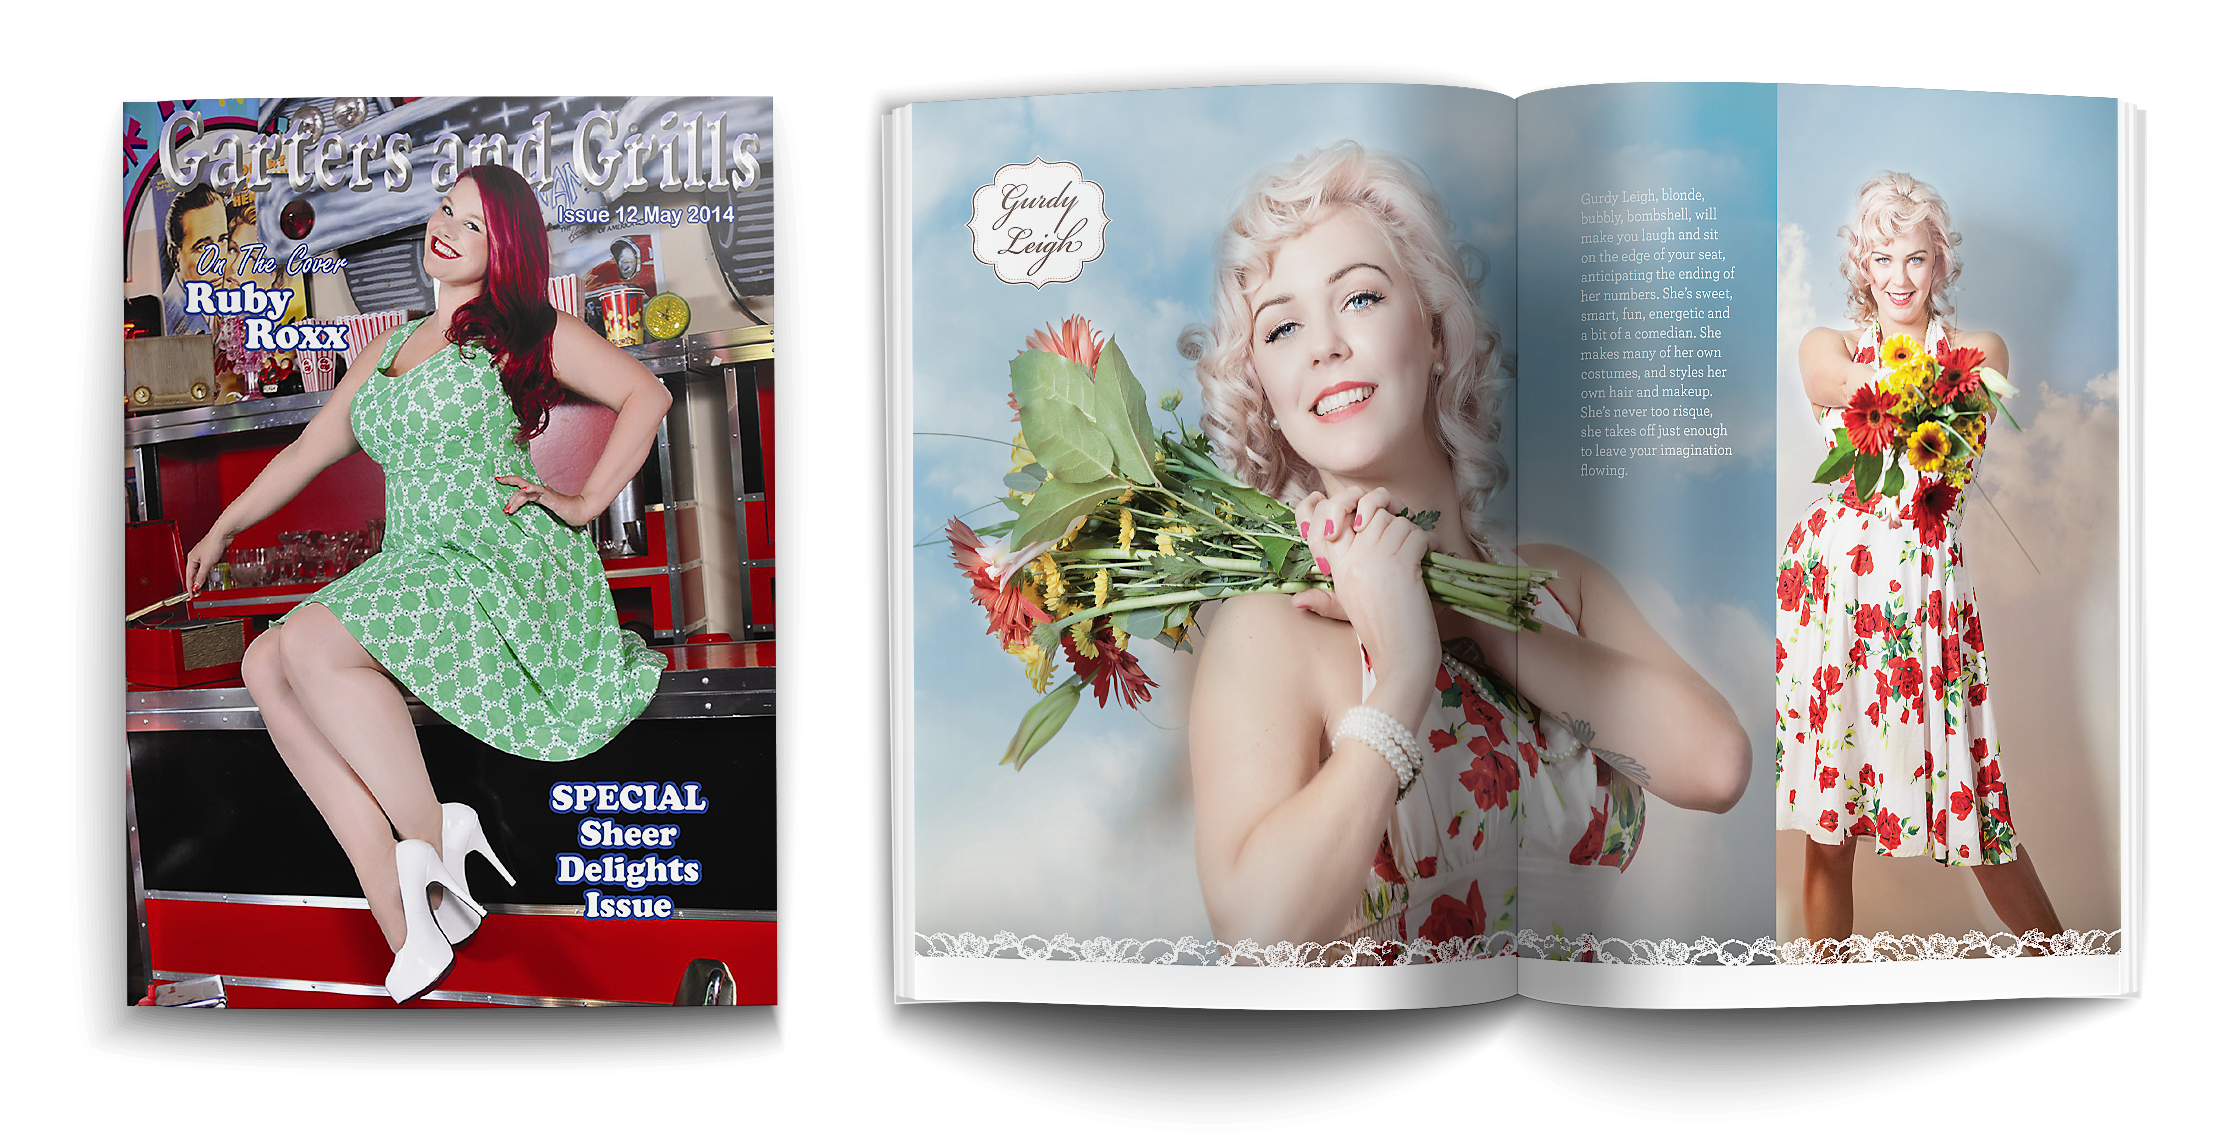 Garters_and_Grills_Magazine_GandG_May_Issue_Render3.png